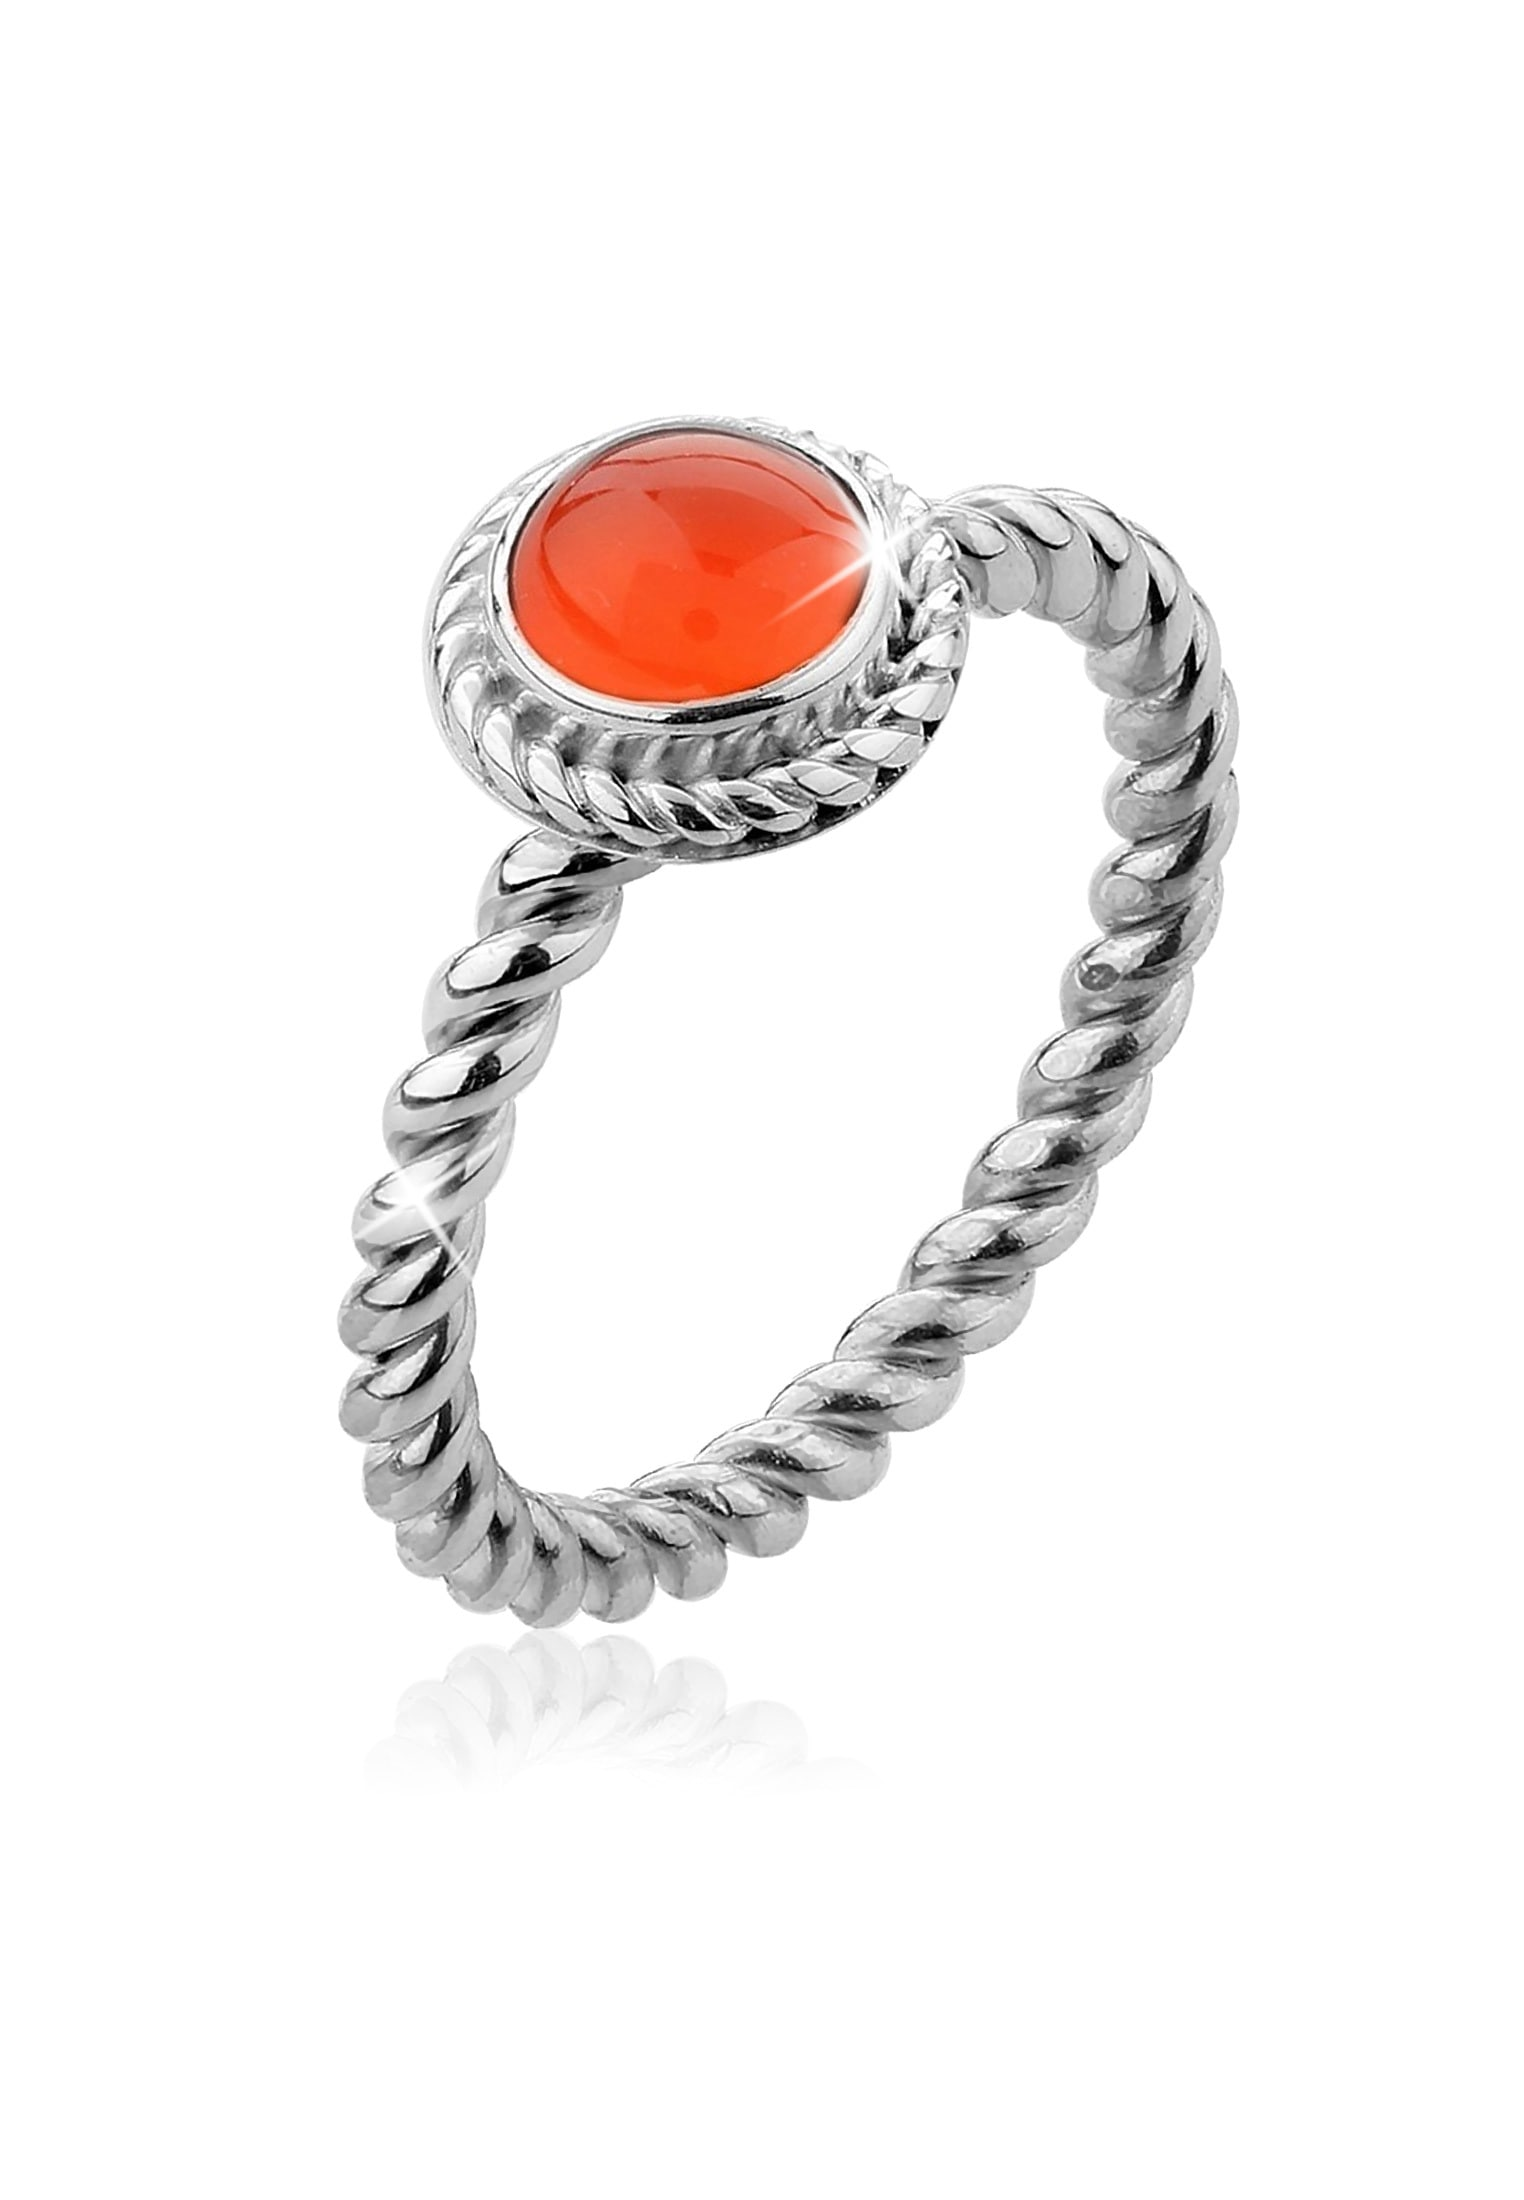 Nenalina Fingerring Karneol Geburtsstein September Boho 925 Silber | Schmuck > Ringe > Fingerringe | Orange | Nenalina